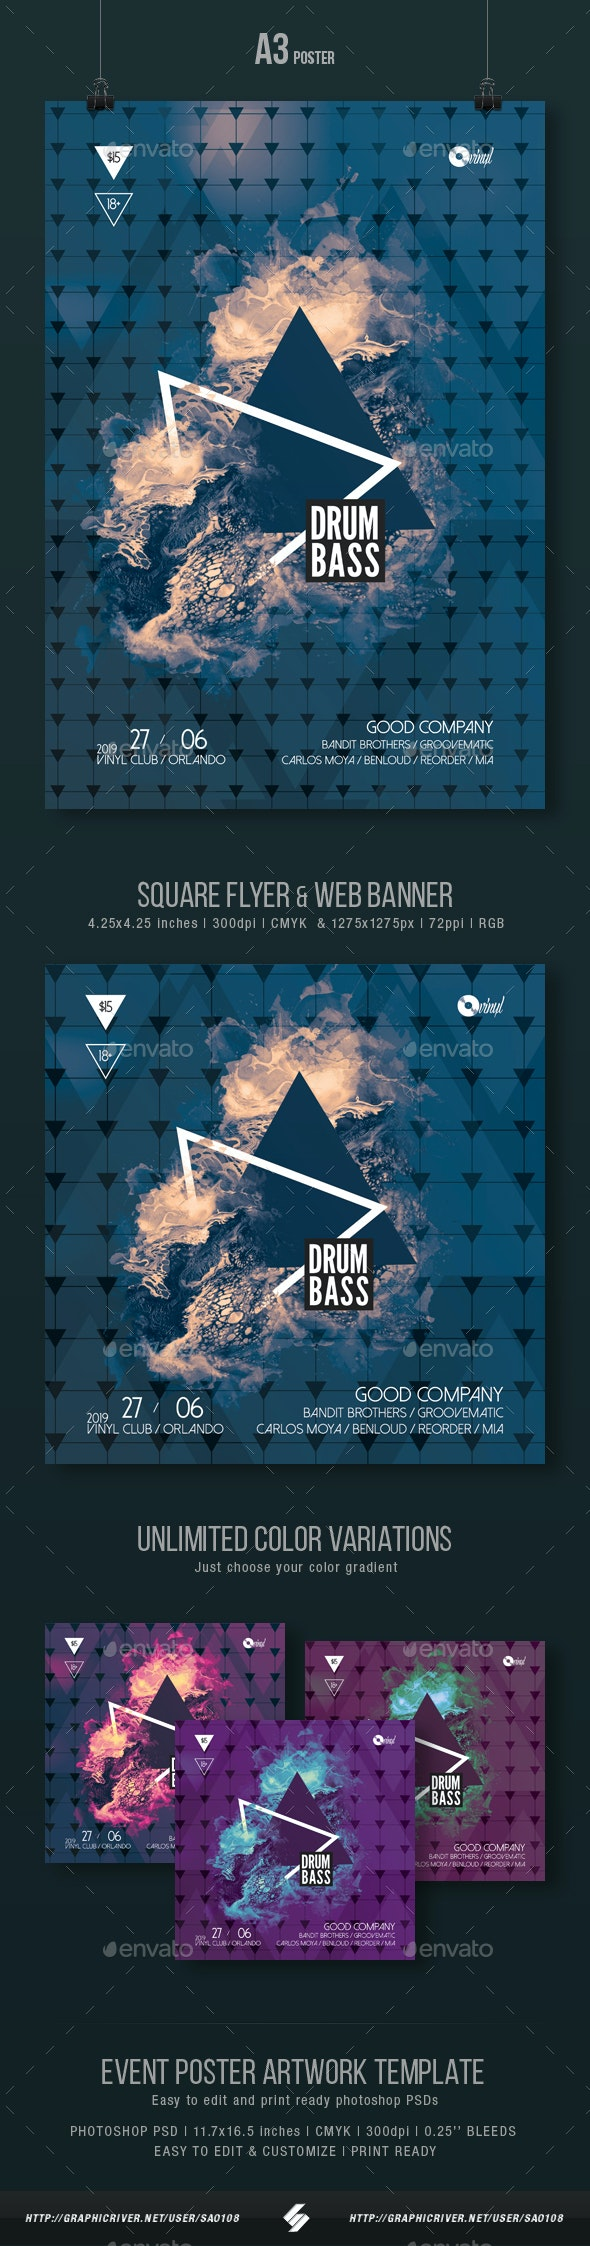 Drum and Bass vol.2 - Party Flyer / Poster Artwork Template A3 - Clubs & Parties Events